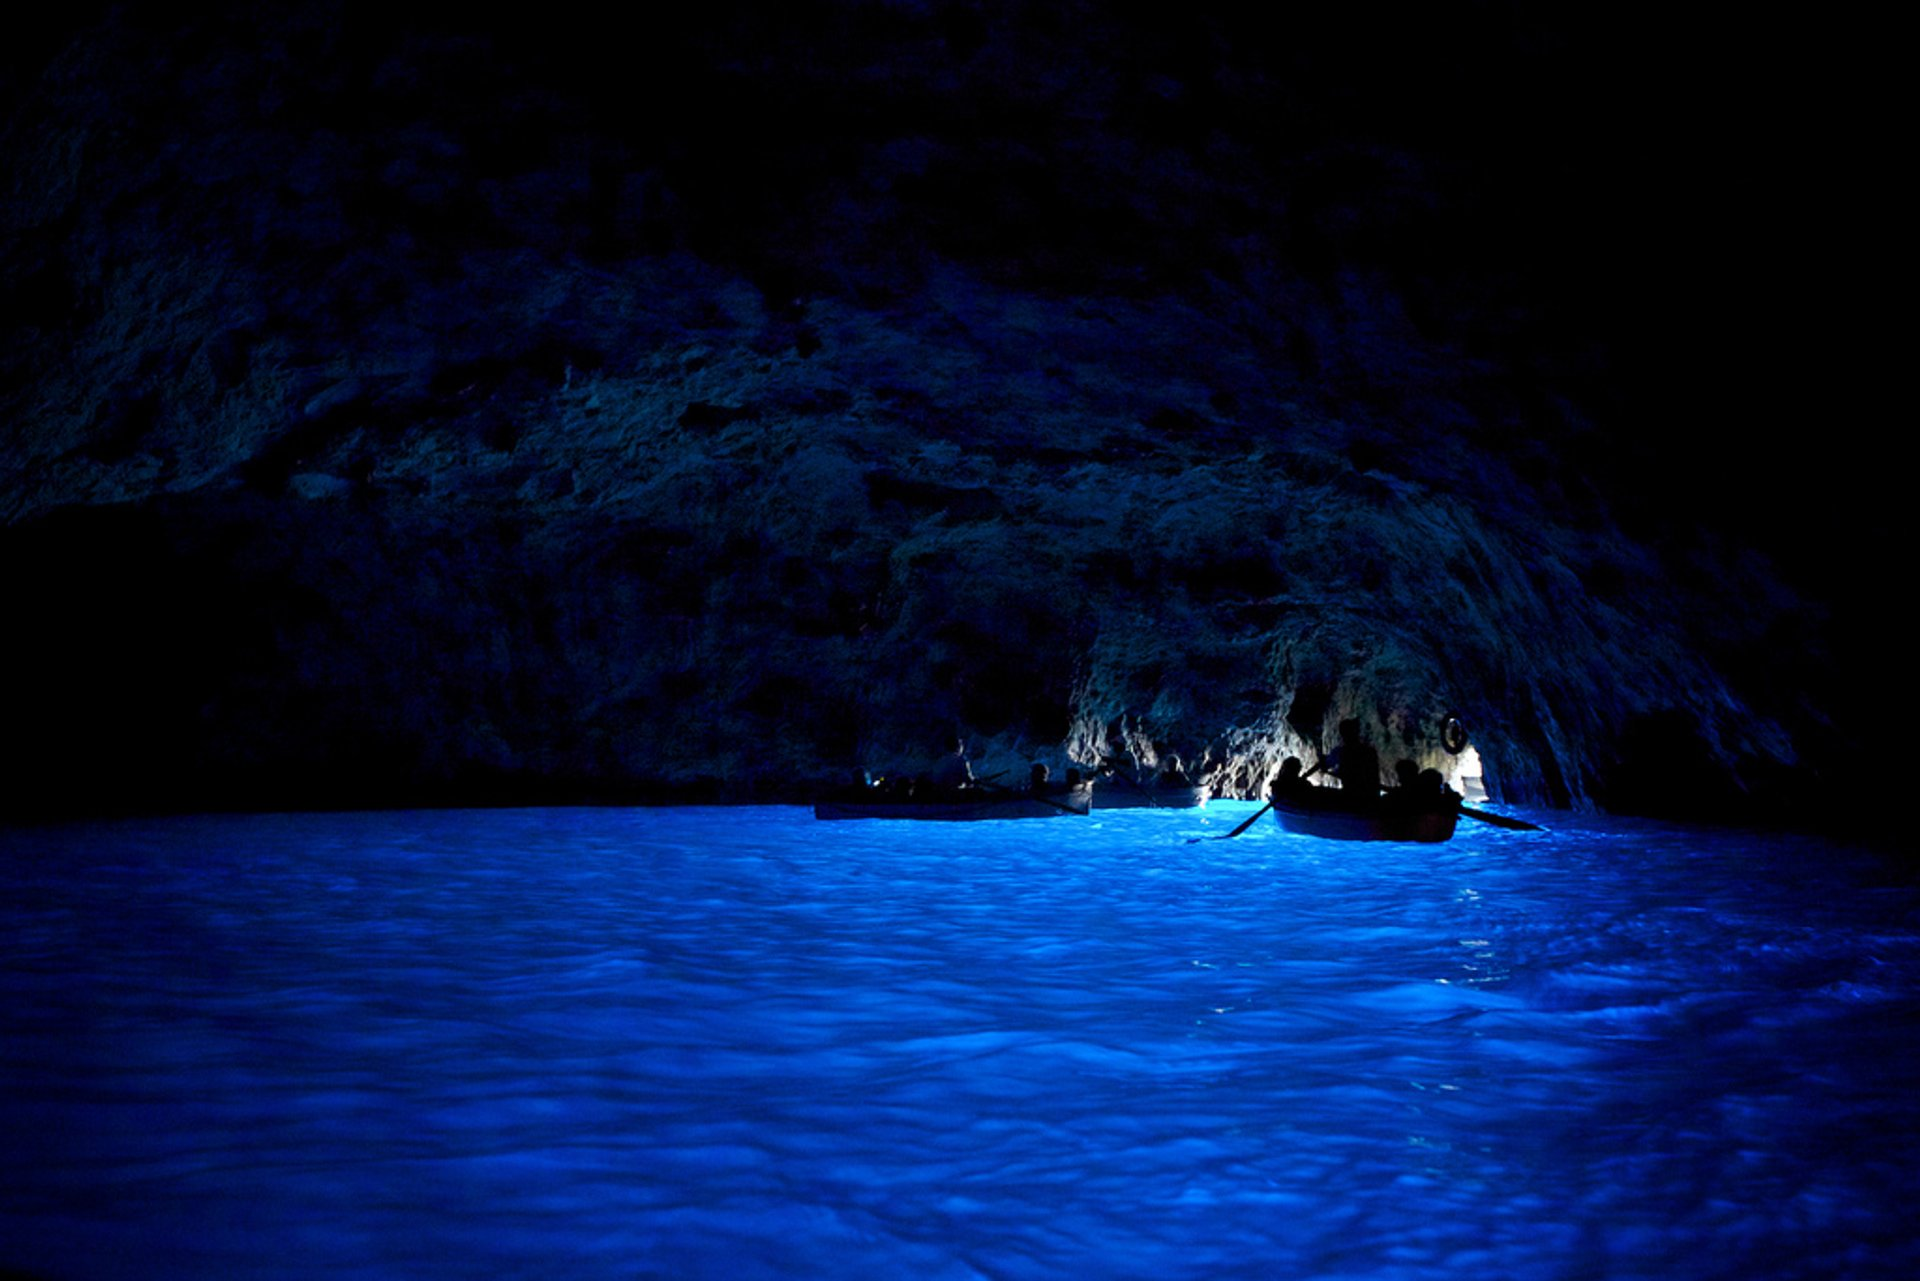 Blue Grotto (Grotta Azzurra), Capri in Italy 2019 - Best Time